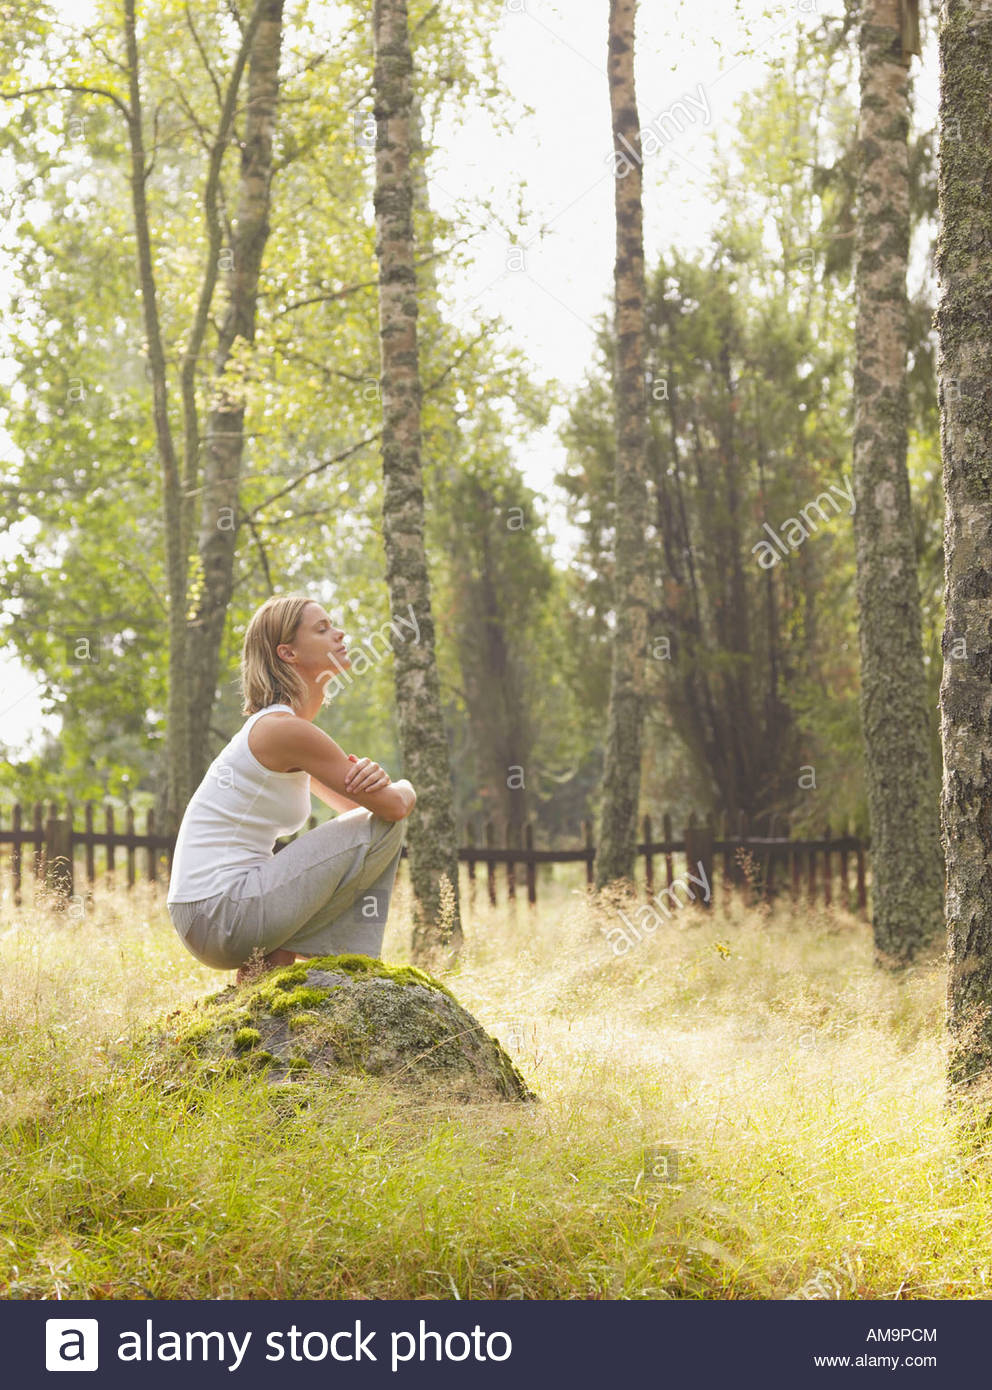 Woman crouching on a large rock by a wooden fence. Stock Photo